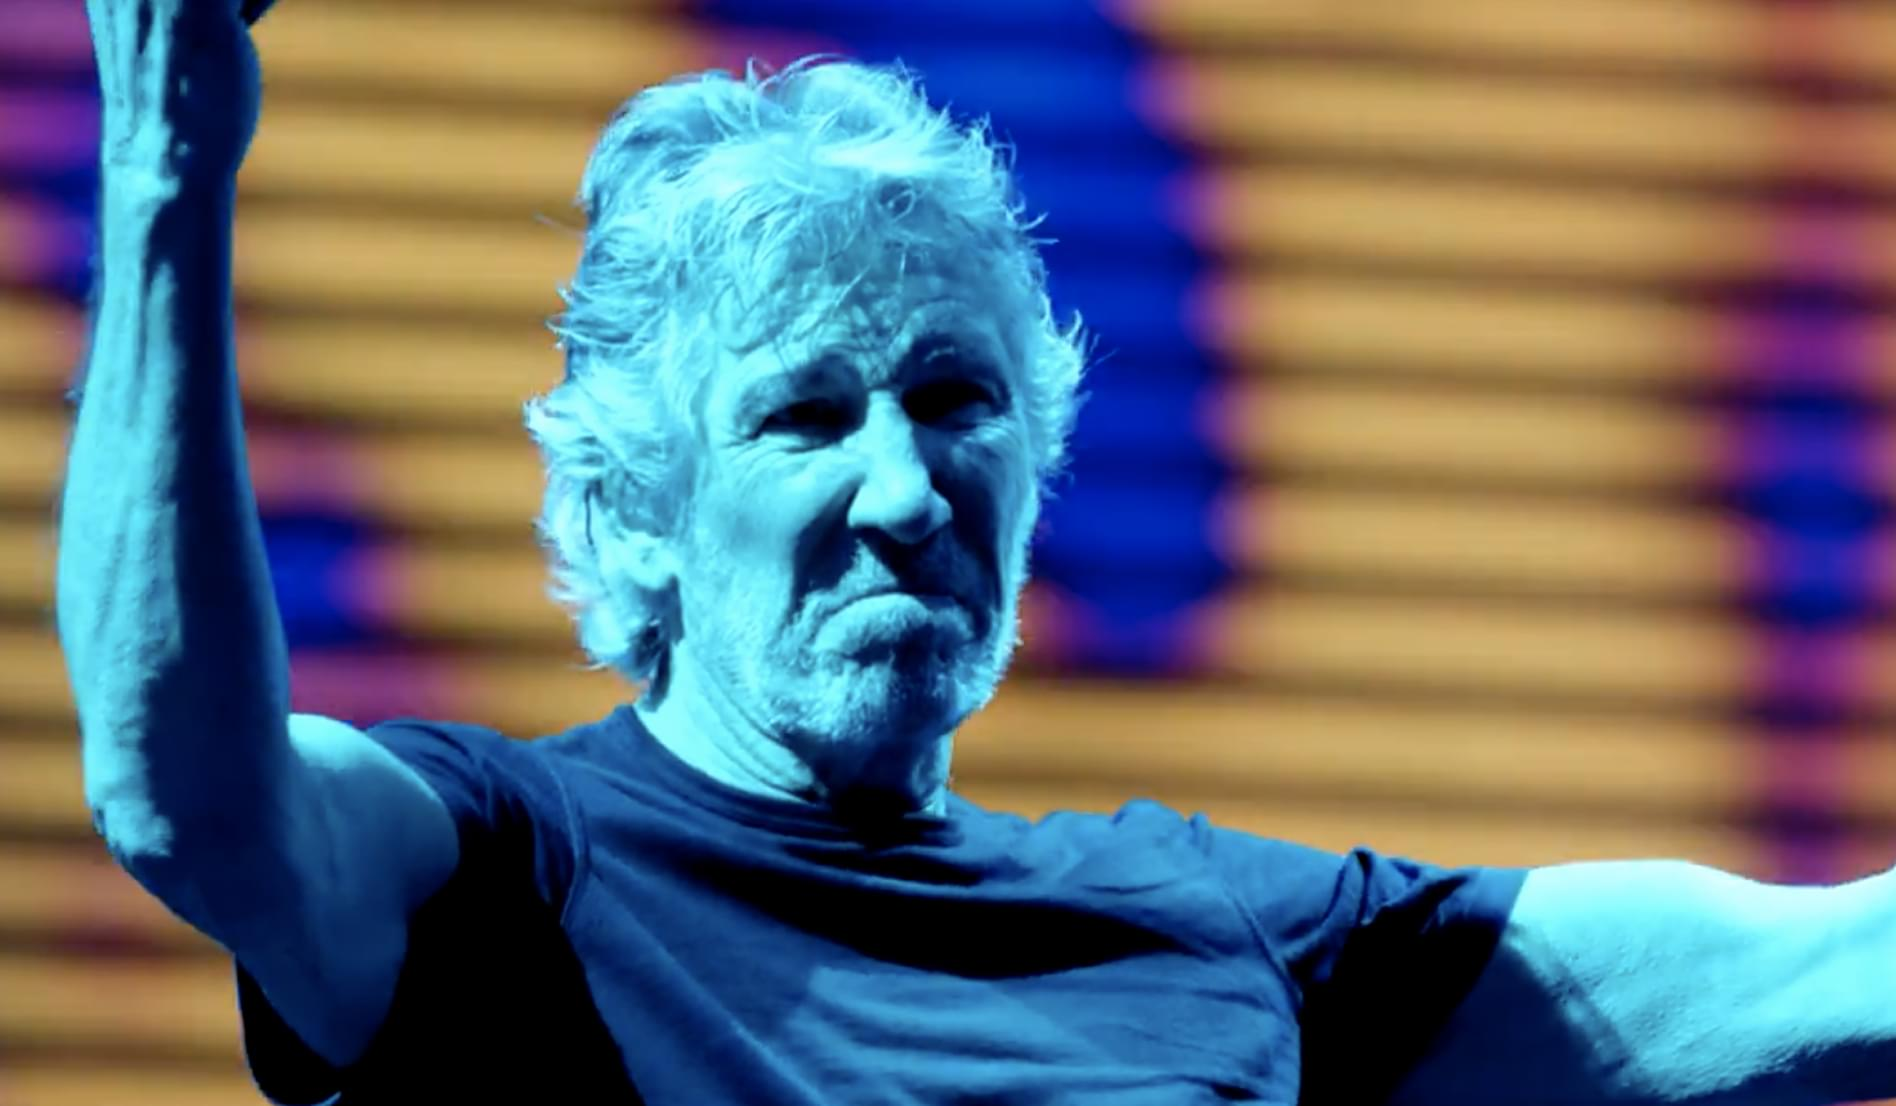 VIDEO: Roger Waters releases the trailer to 'Us + Them' concert film